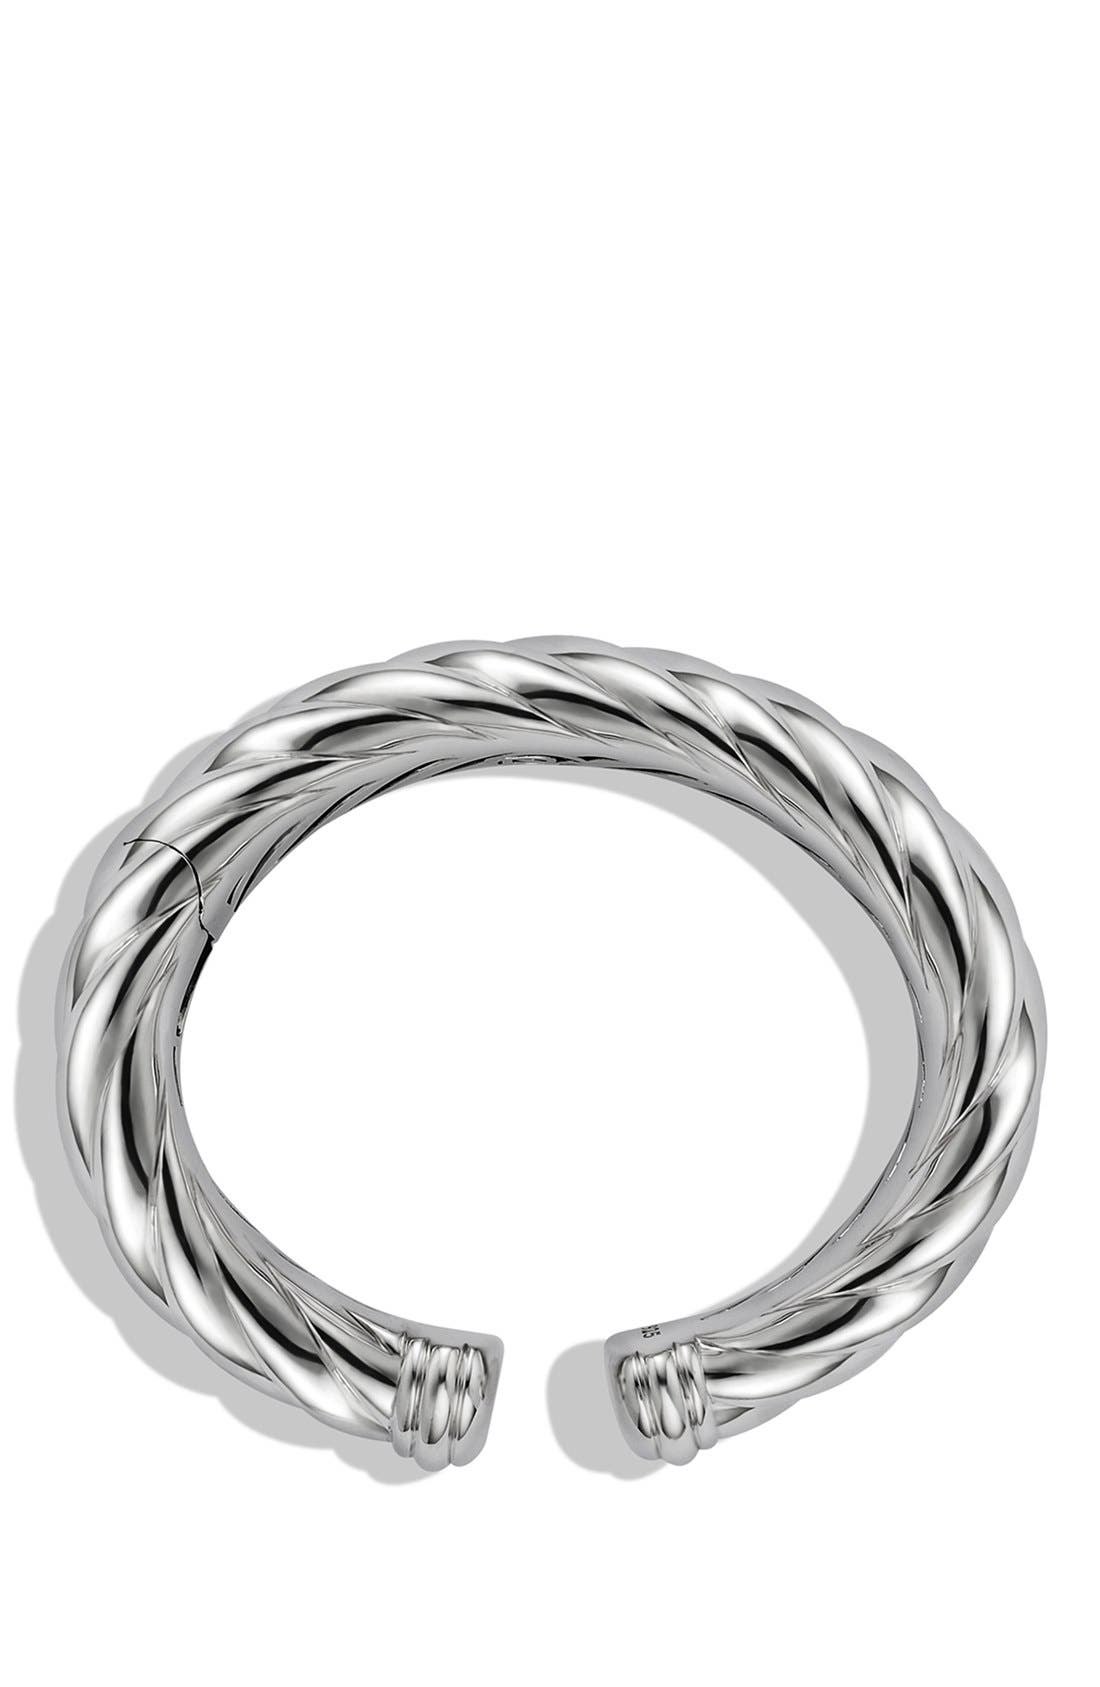 'Waverly' Bracelet,                             Alternate thumbnail 2, color,                             Silver